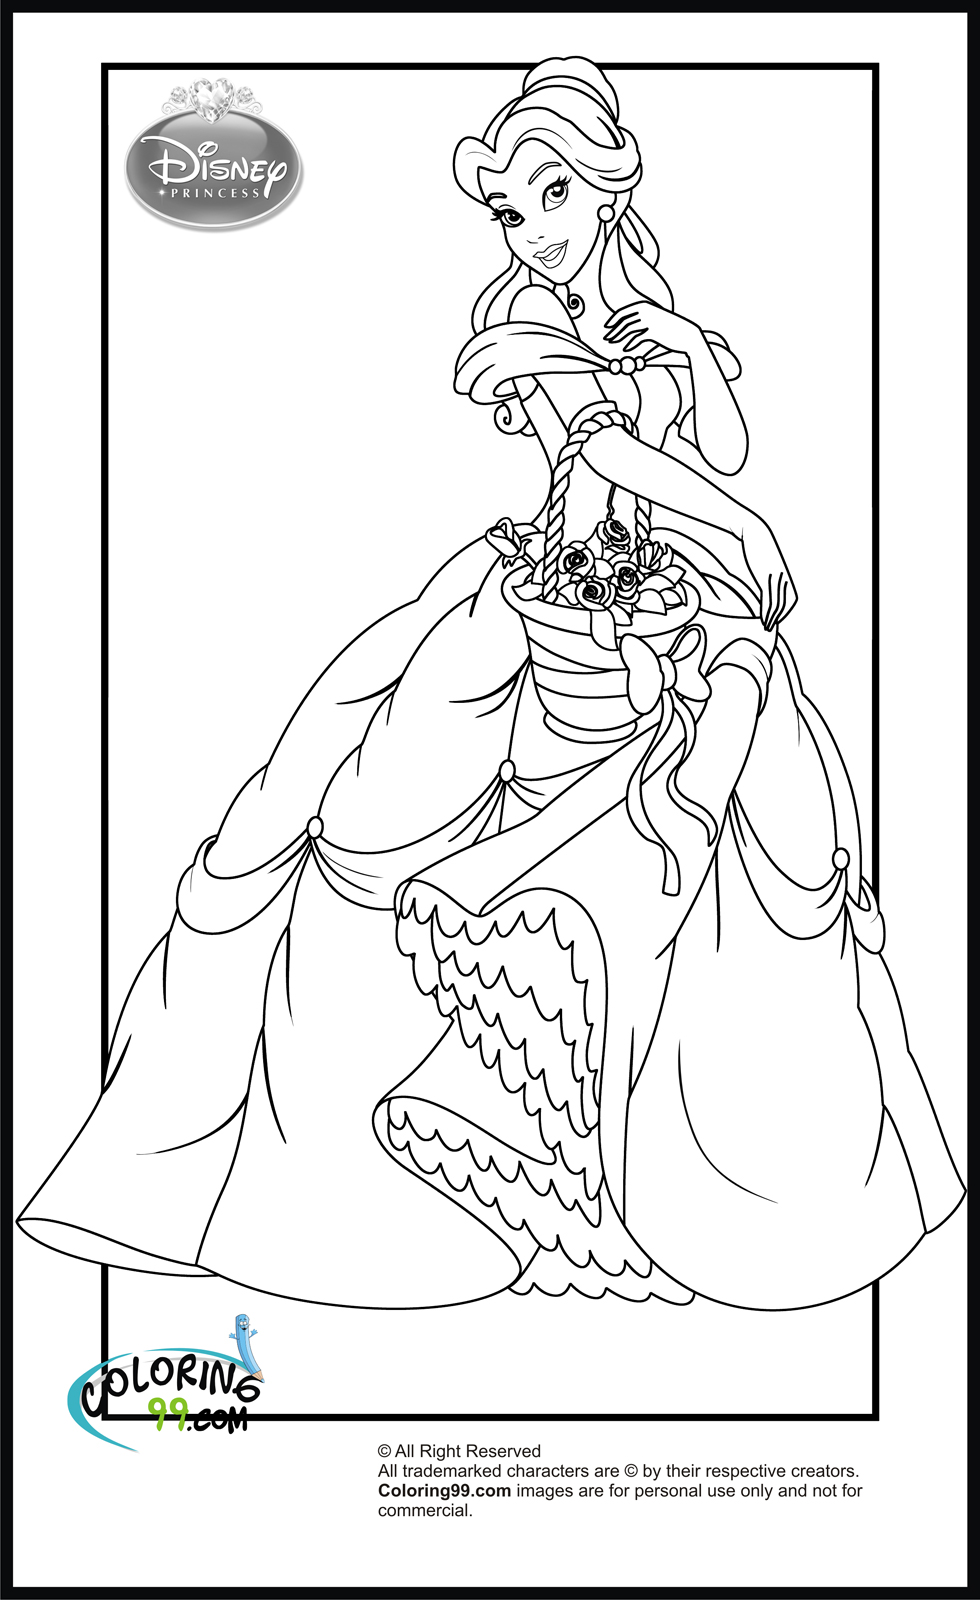 Disney Princess Coloring Pages | Minister Coloring | all disney princess coloring pages printable